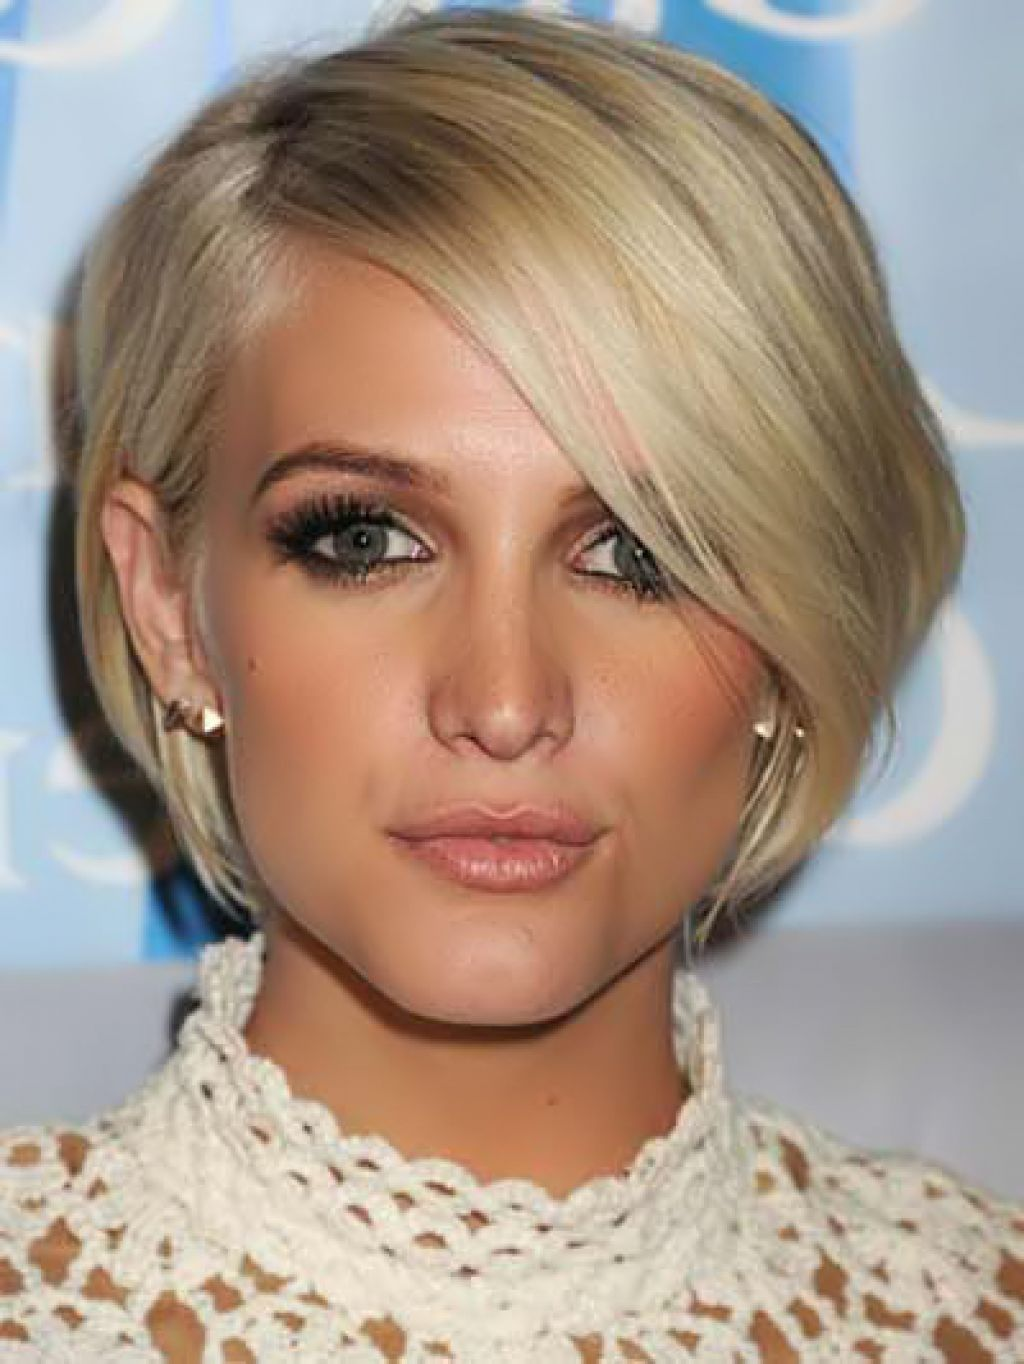 Remarkable Blonde Bob Hairstyles Hairstyle Archives Hairstyles For Women Draintrainus